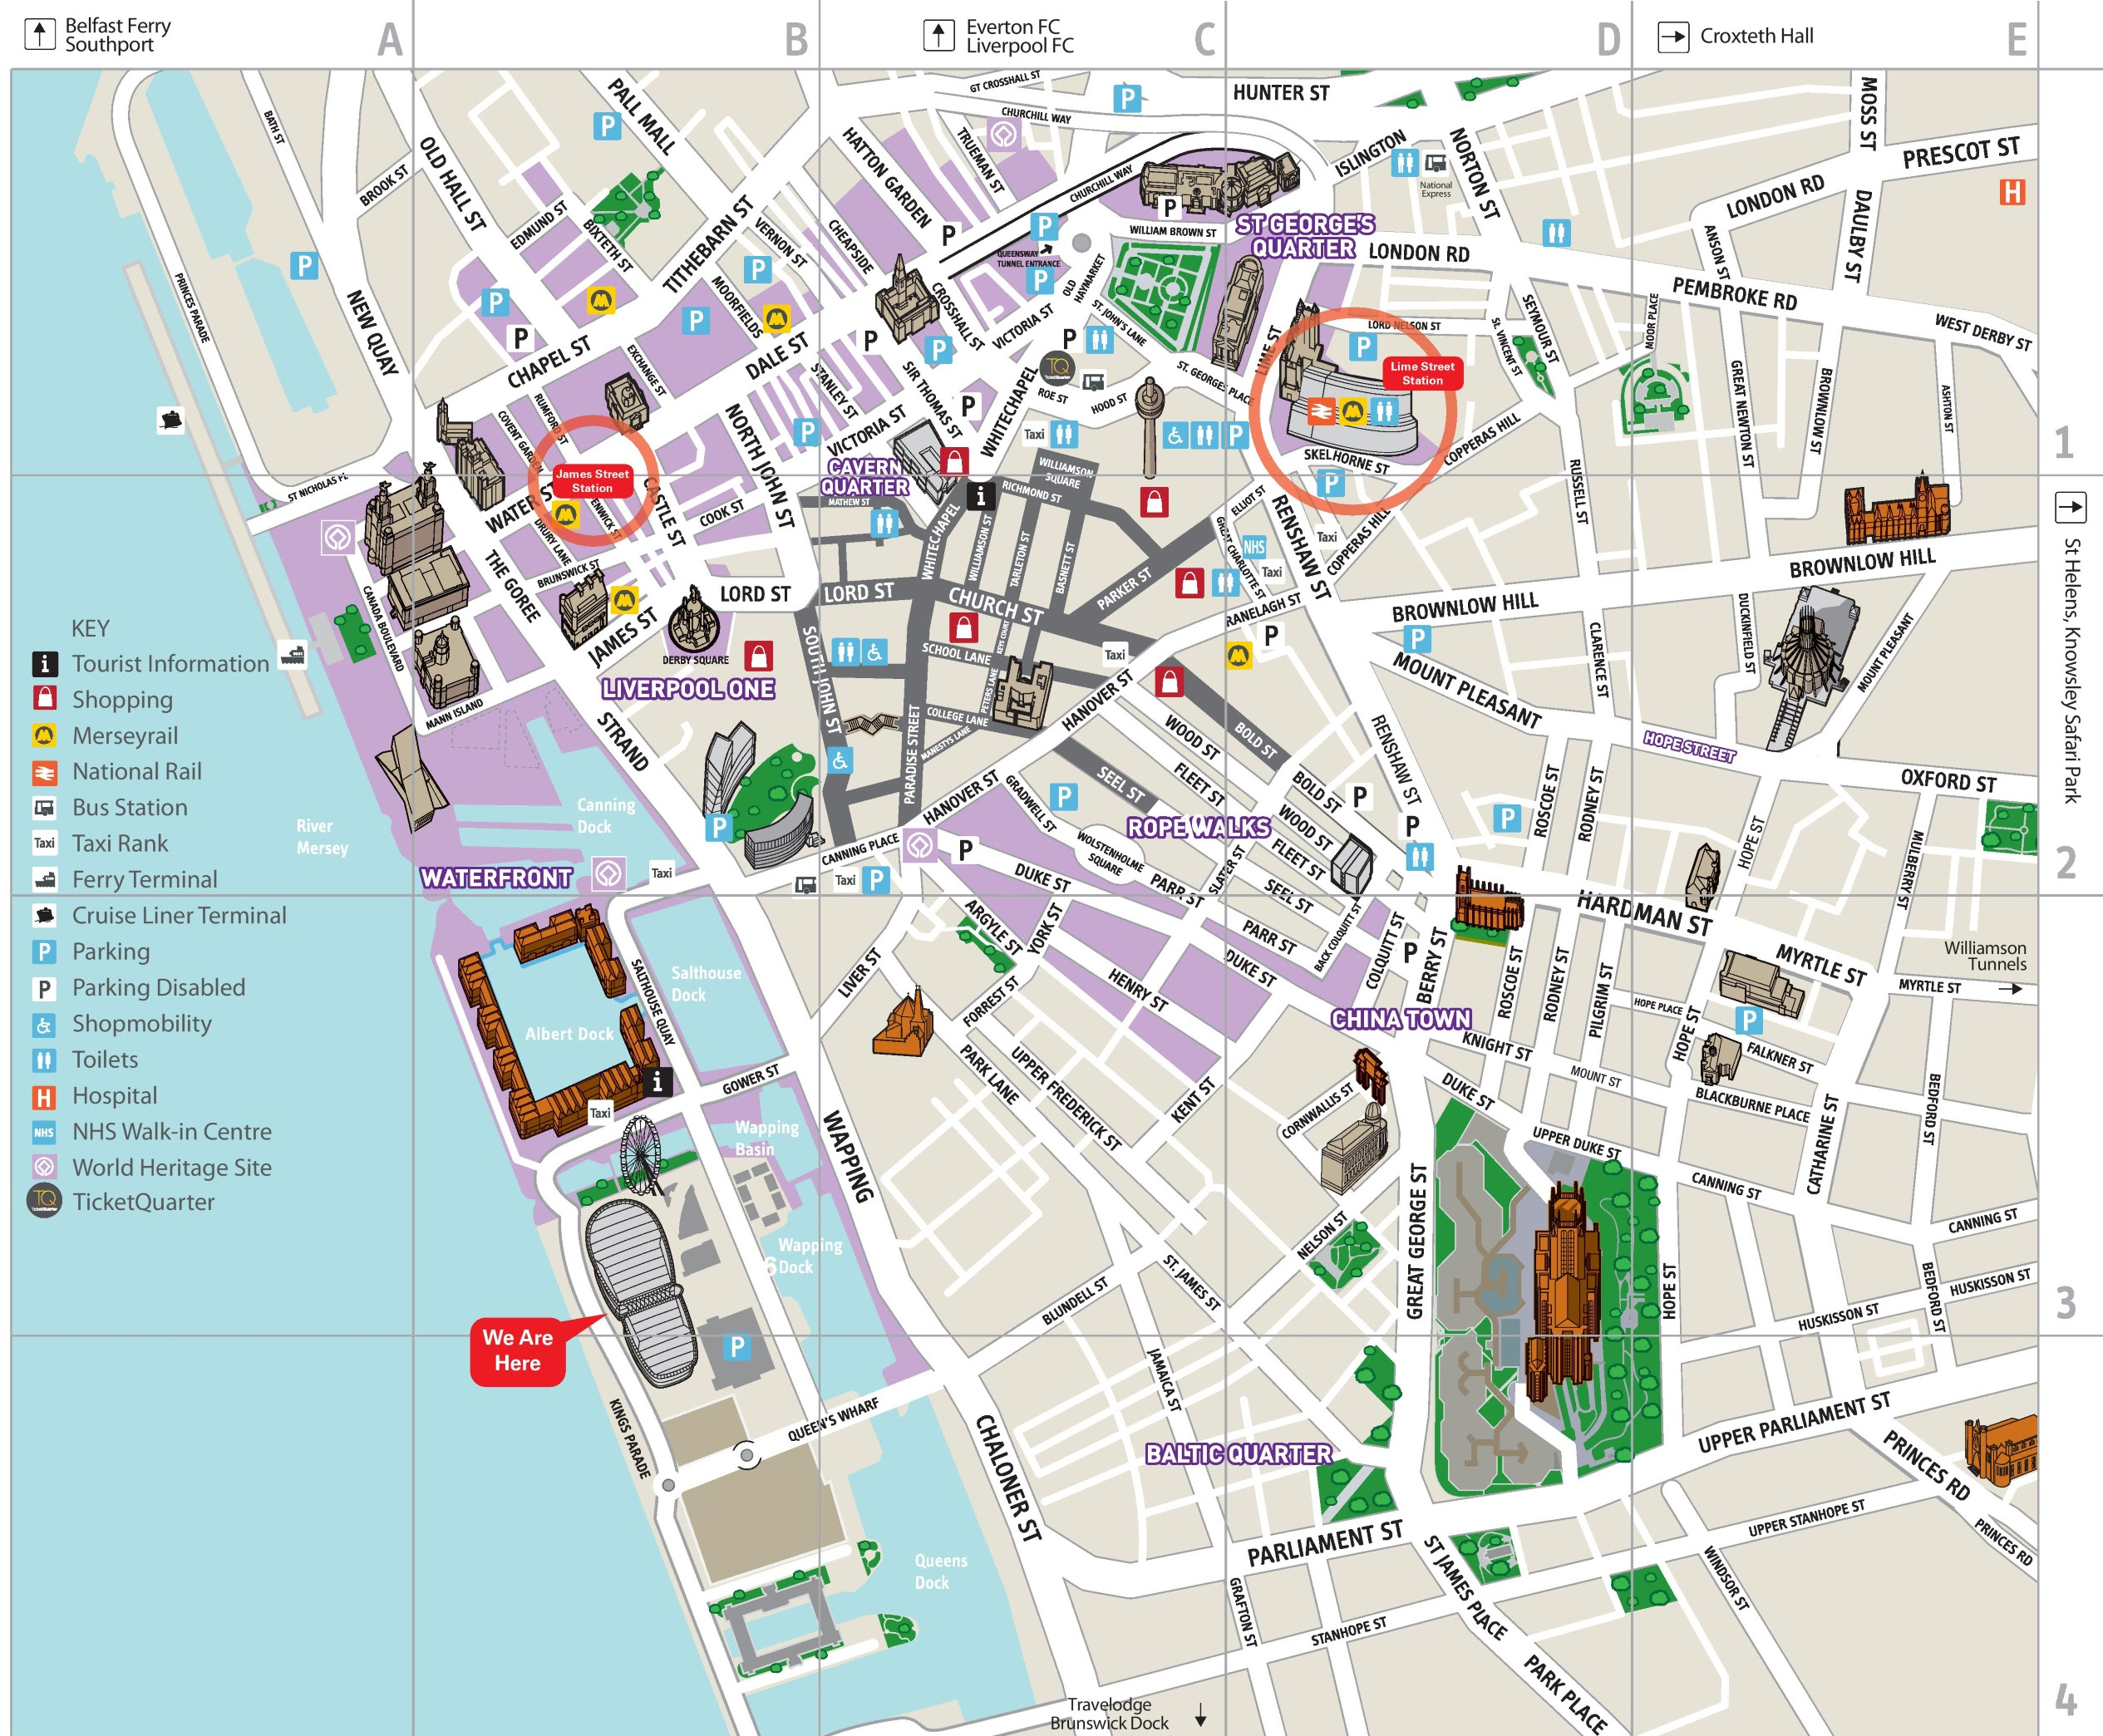 Street Map Of Liverpool Docks - About Dock Photos Mtgimage.Org